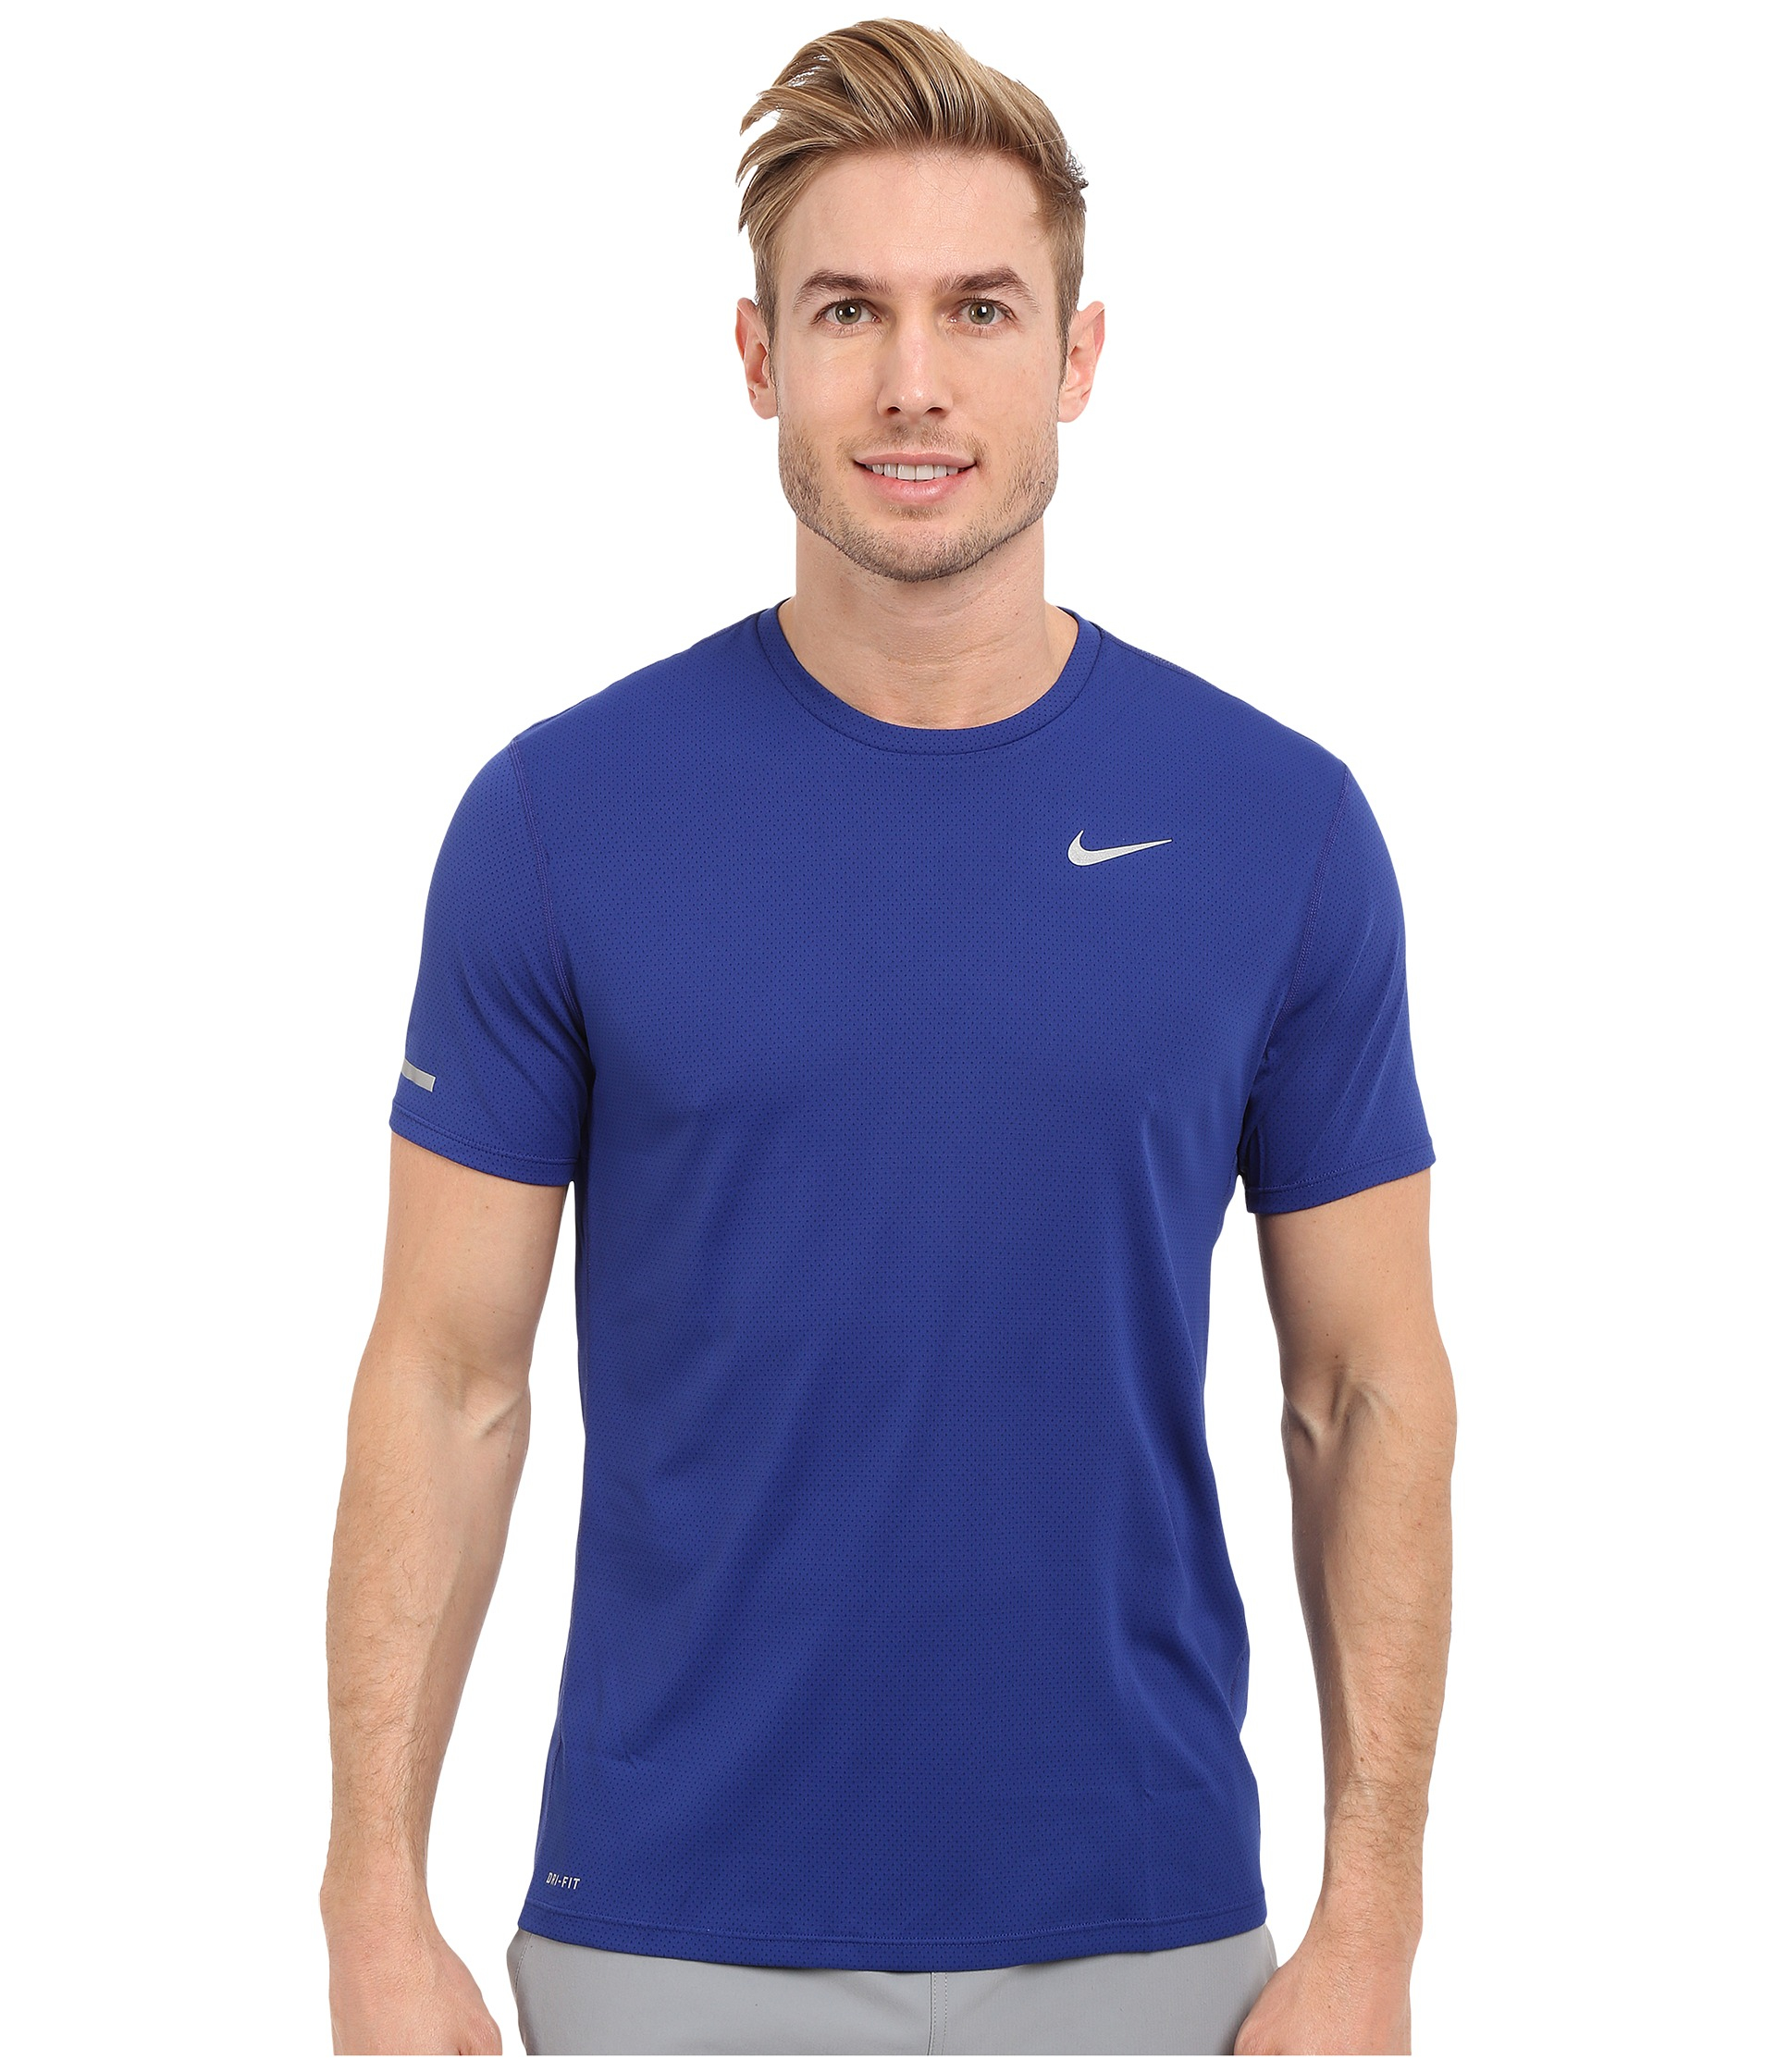 Nike dri fit contour s s running shirt in blue for men lyst for Running dri fit shirts